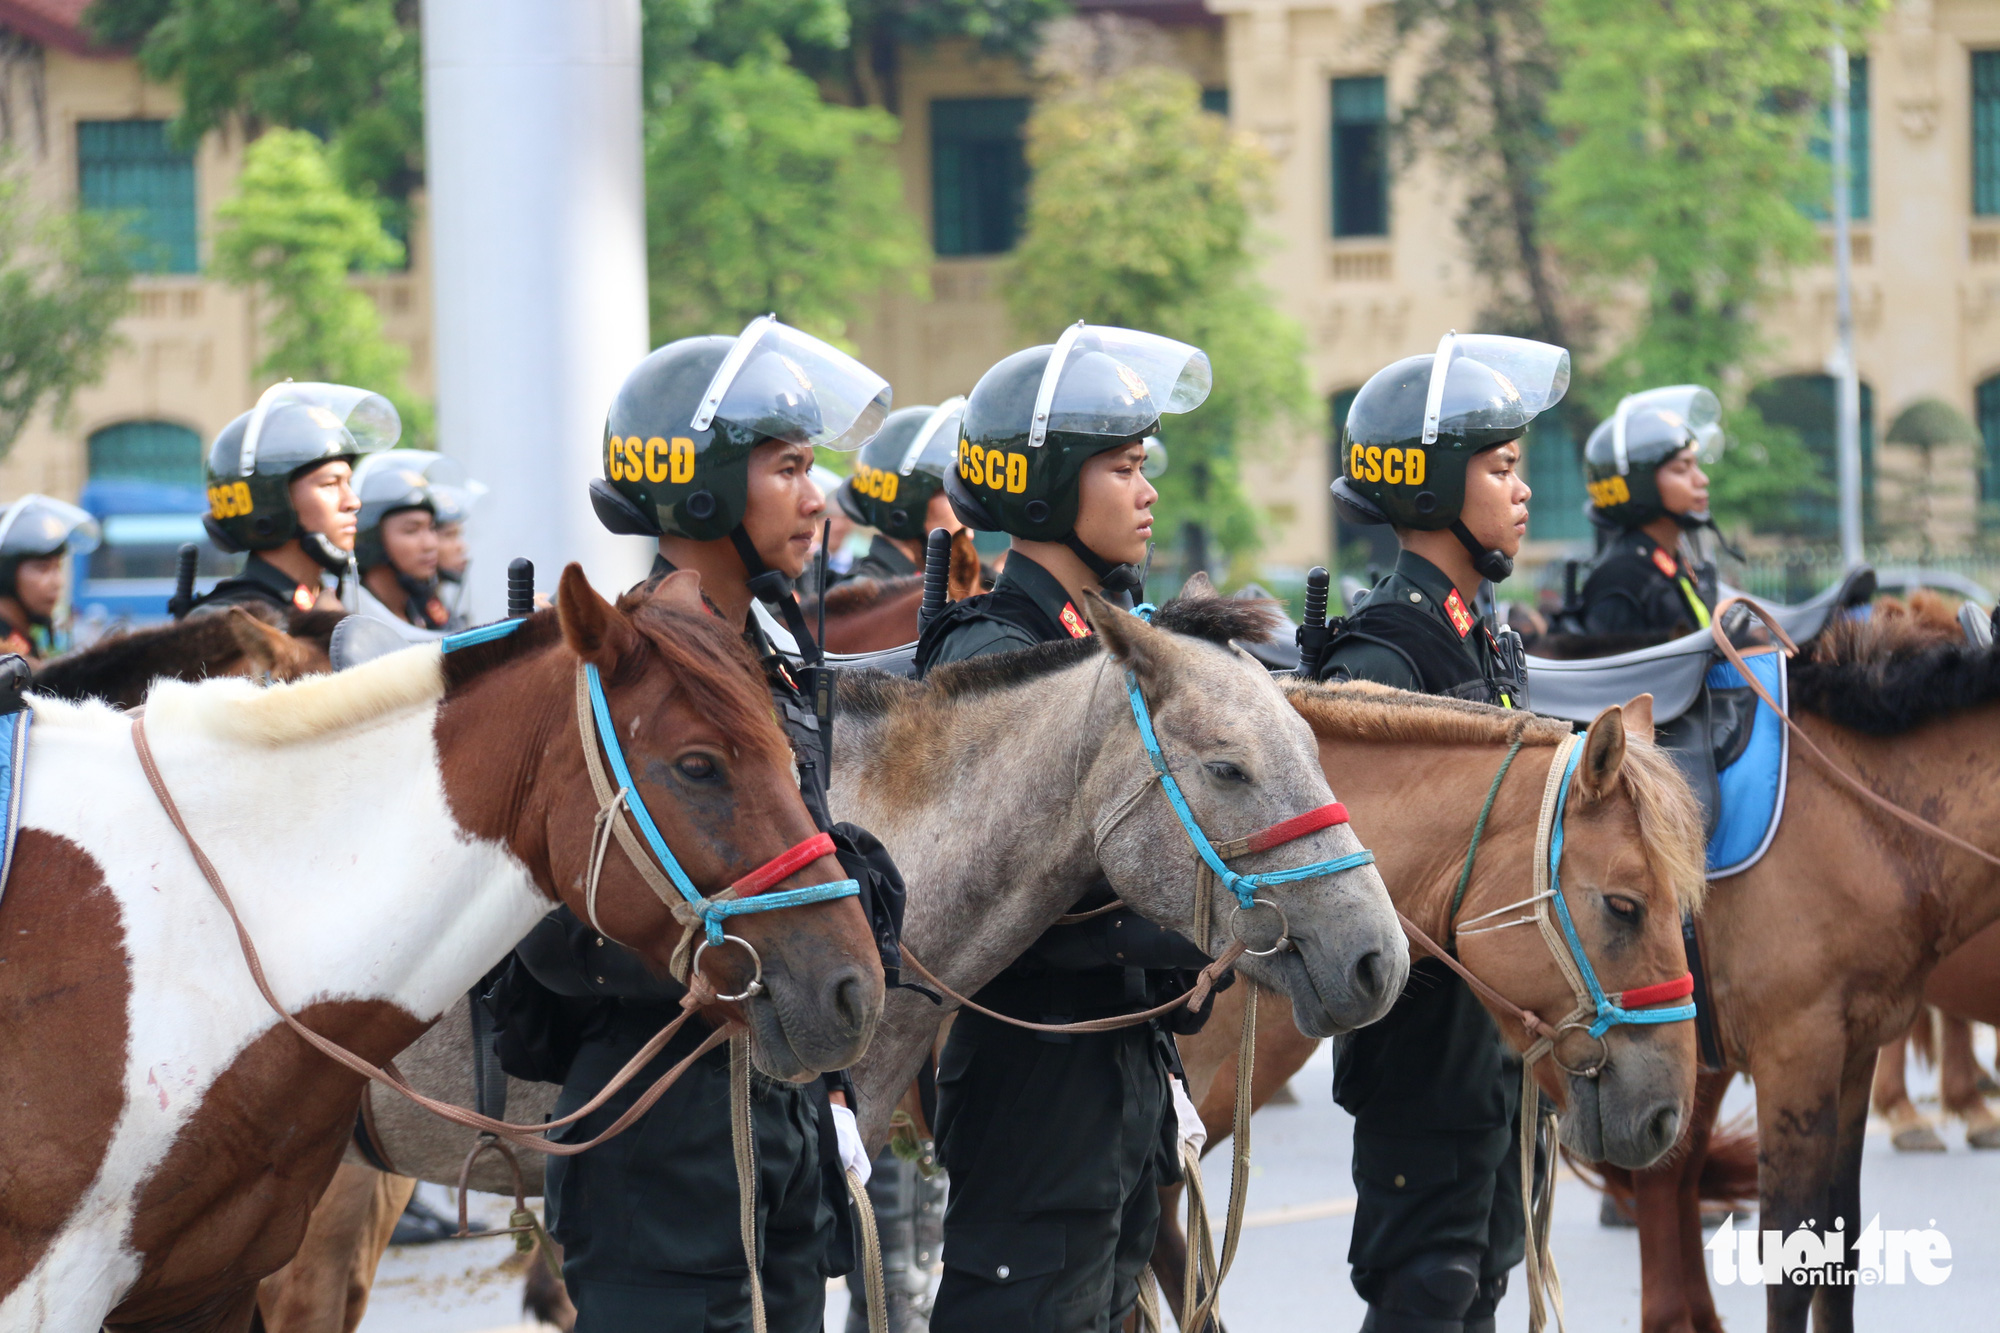 A ceremony is organized at Ba Dinh Square in Hanoi to mark the debut of Vietnam's mounted police force on June 8, 2020. Photo: Tien Long / Tuoi Tre